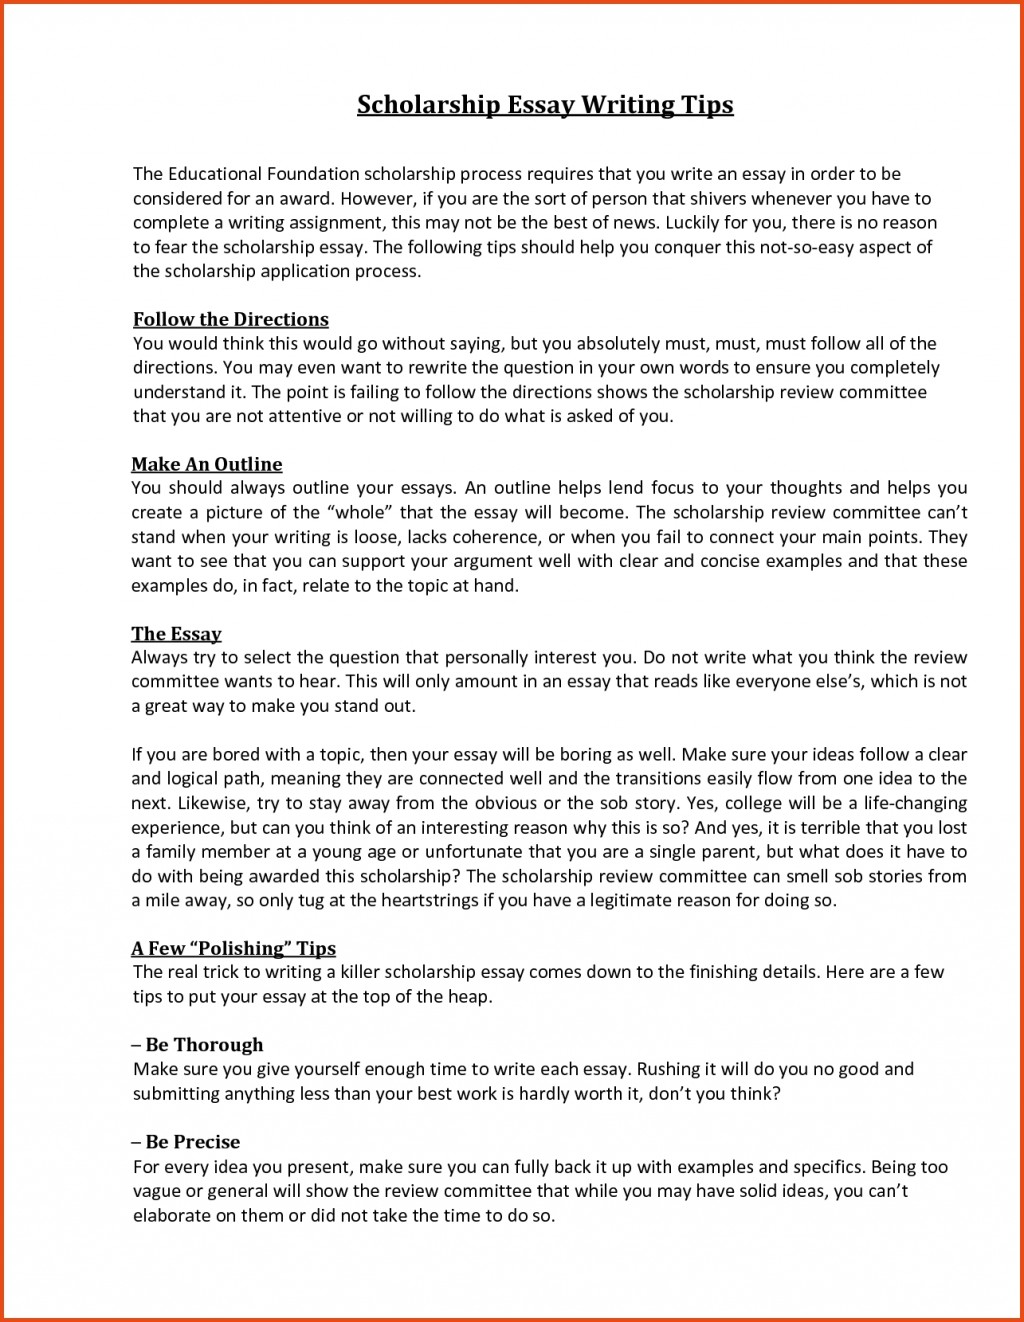 003 Scholarship Essay Format Sample With Regard To Sensational College Essays For Writing Large